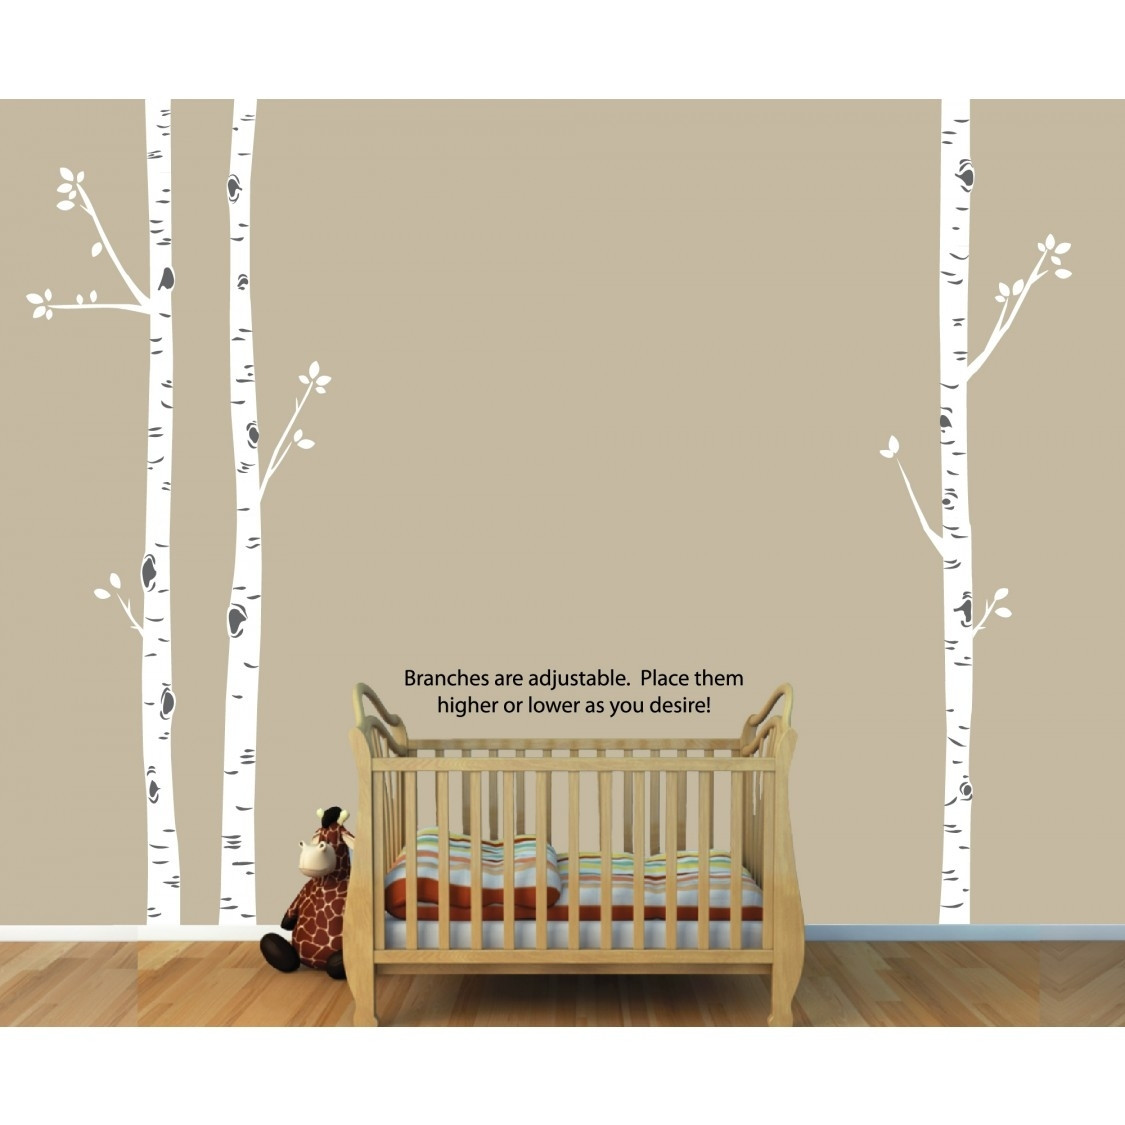 Birch Tree Wall Art And Birch Tree Decals For Nursery For Girls Intended For Most Recently Released Birch Tree Wall Art (View 10 of 20)